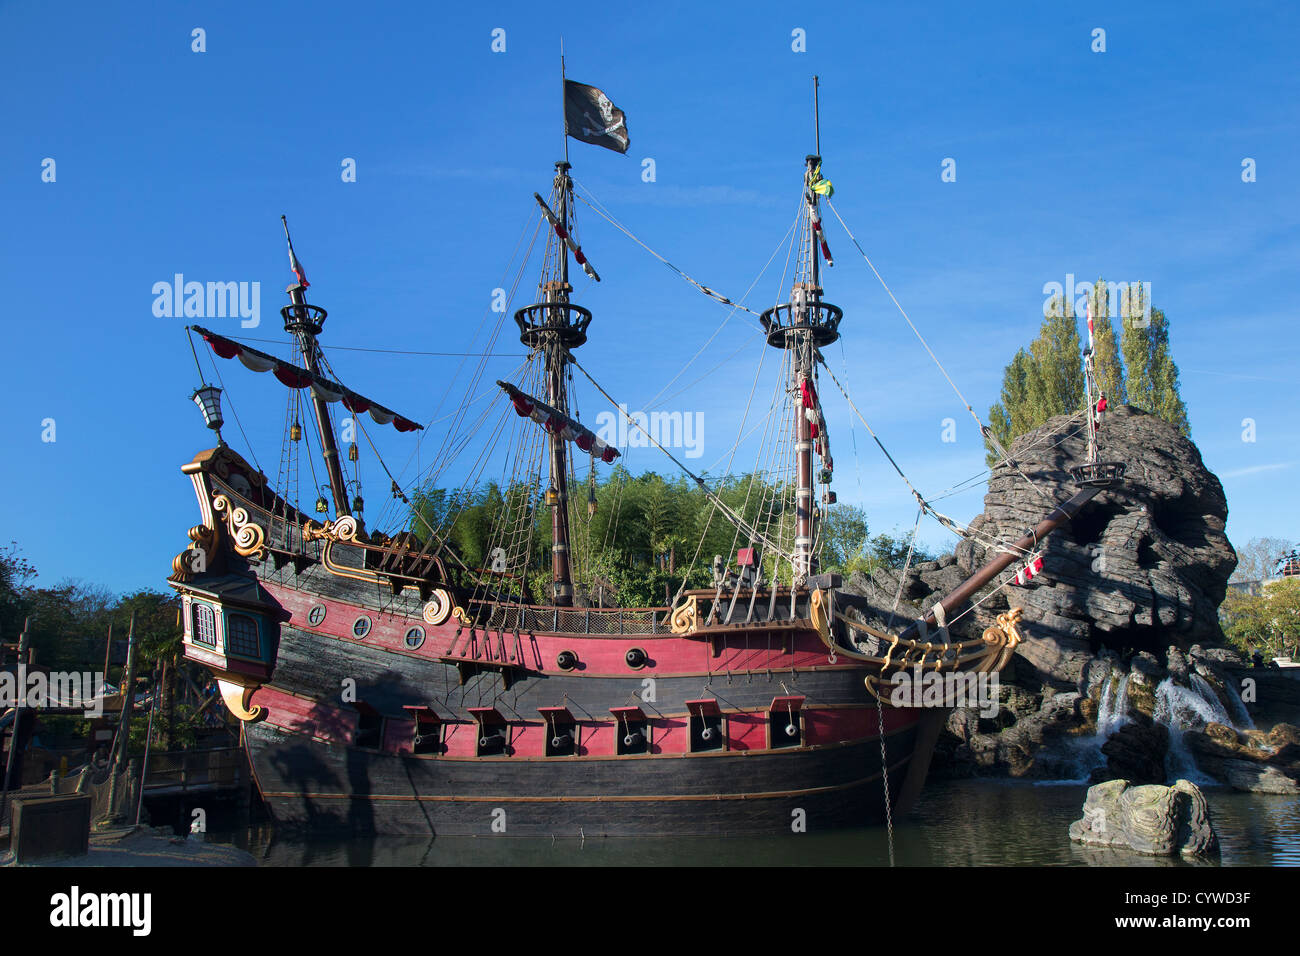 pirates of the caribbean stockfotos pirates of the caribbean bilder alamy. Black Bedroom Furniture Sets. Home Design Ideas